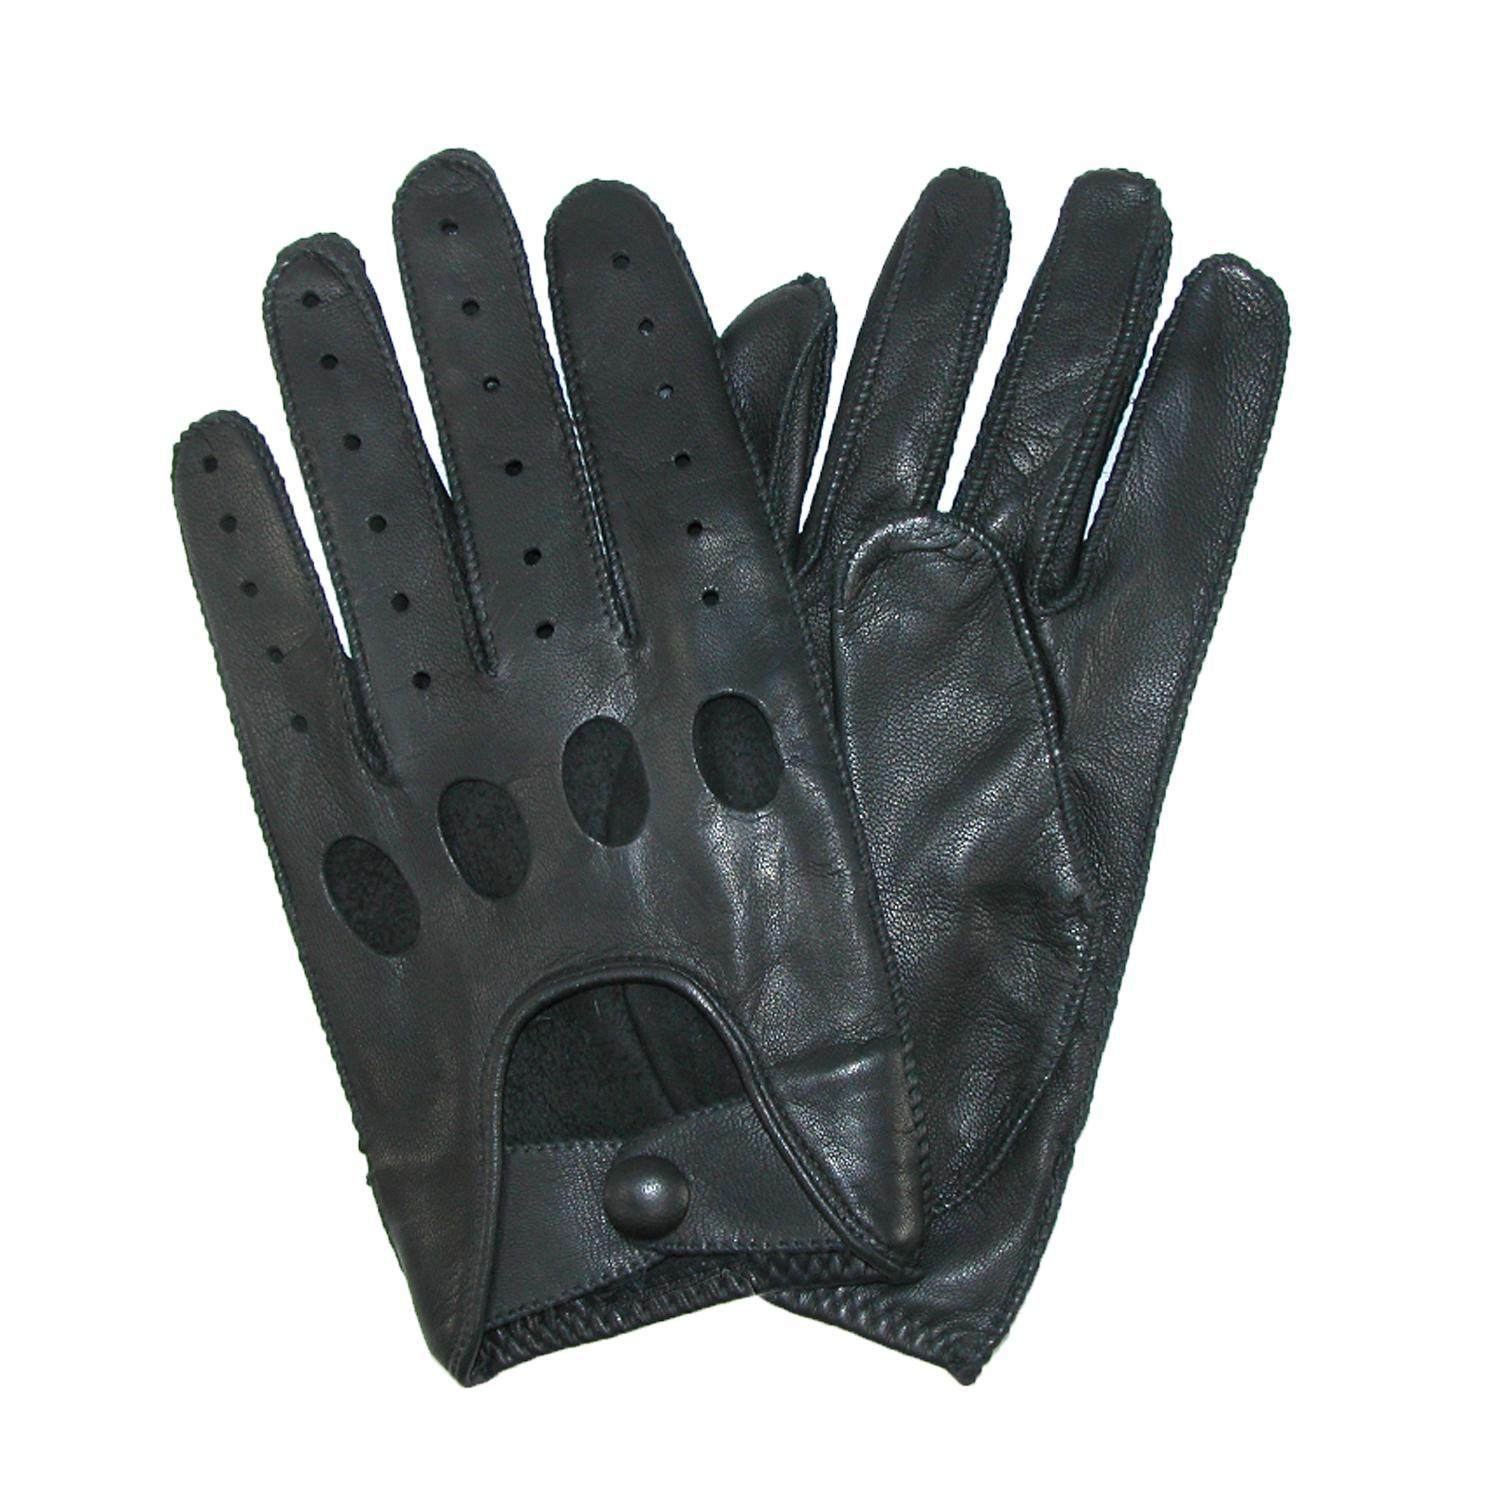 Special Insulated Leather Gloves - Great for everyday use and driving Harrms Best Shop Best Sellers · Deals of the Day · Fast Shipping · Read Ratings & Reviews.